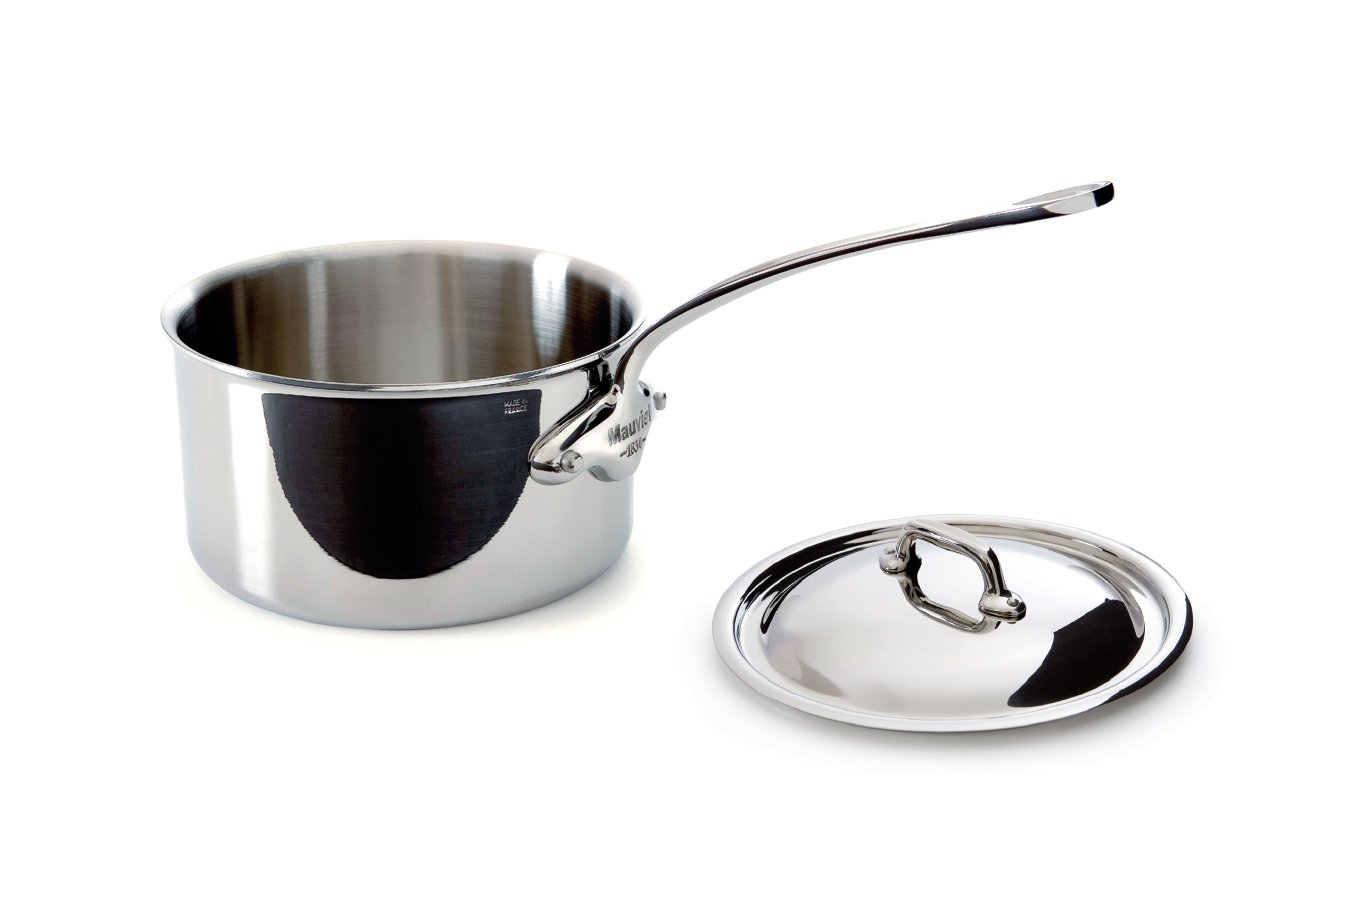 Mauviel Made In France M'Cook 5 Ply Stainless Steel 5210.13 0.9 Quart Saucepan with Lid, Cast Stainless Steel Handle